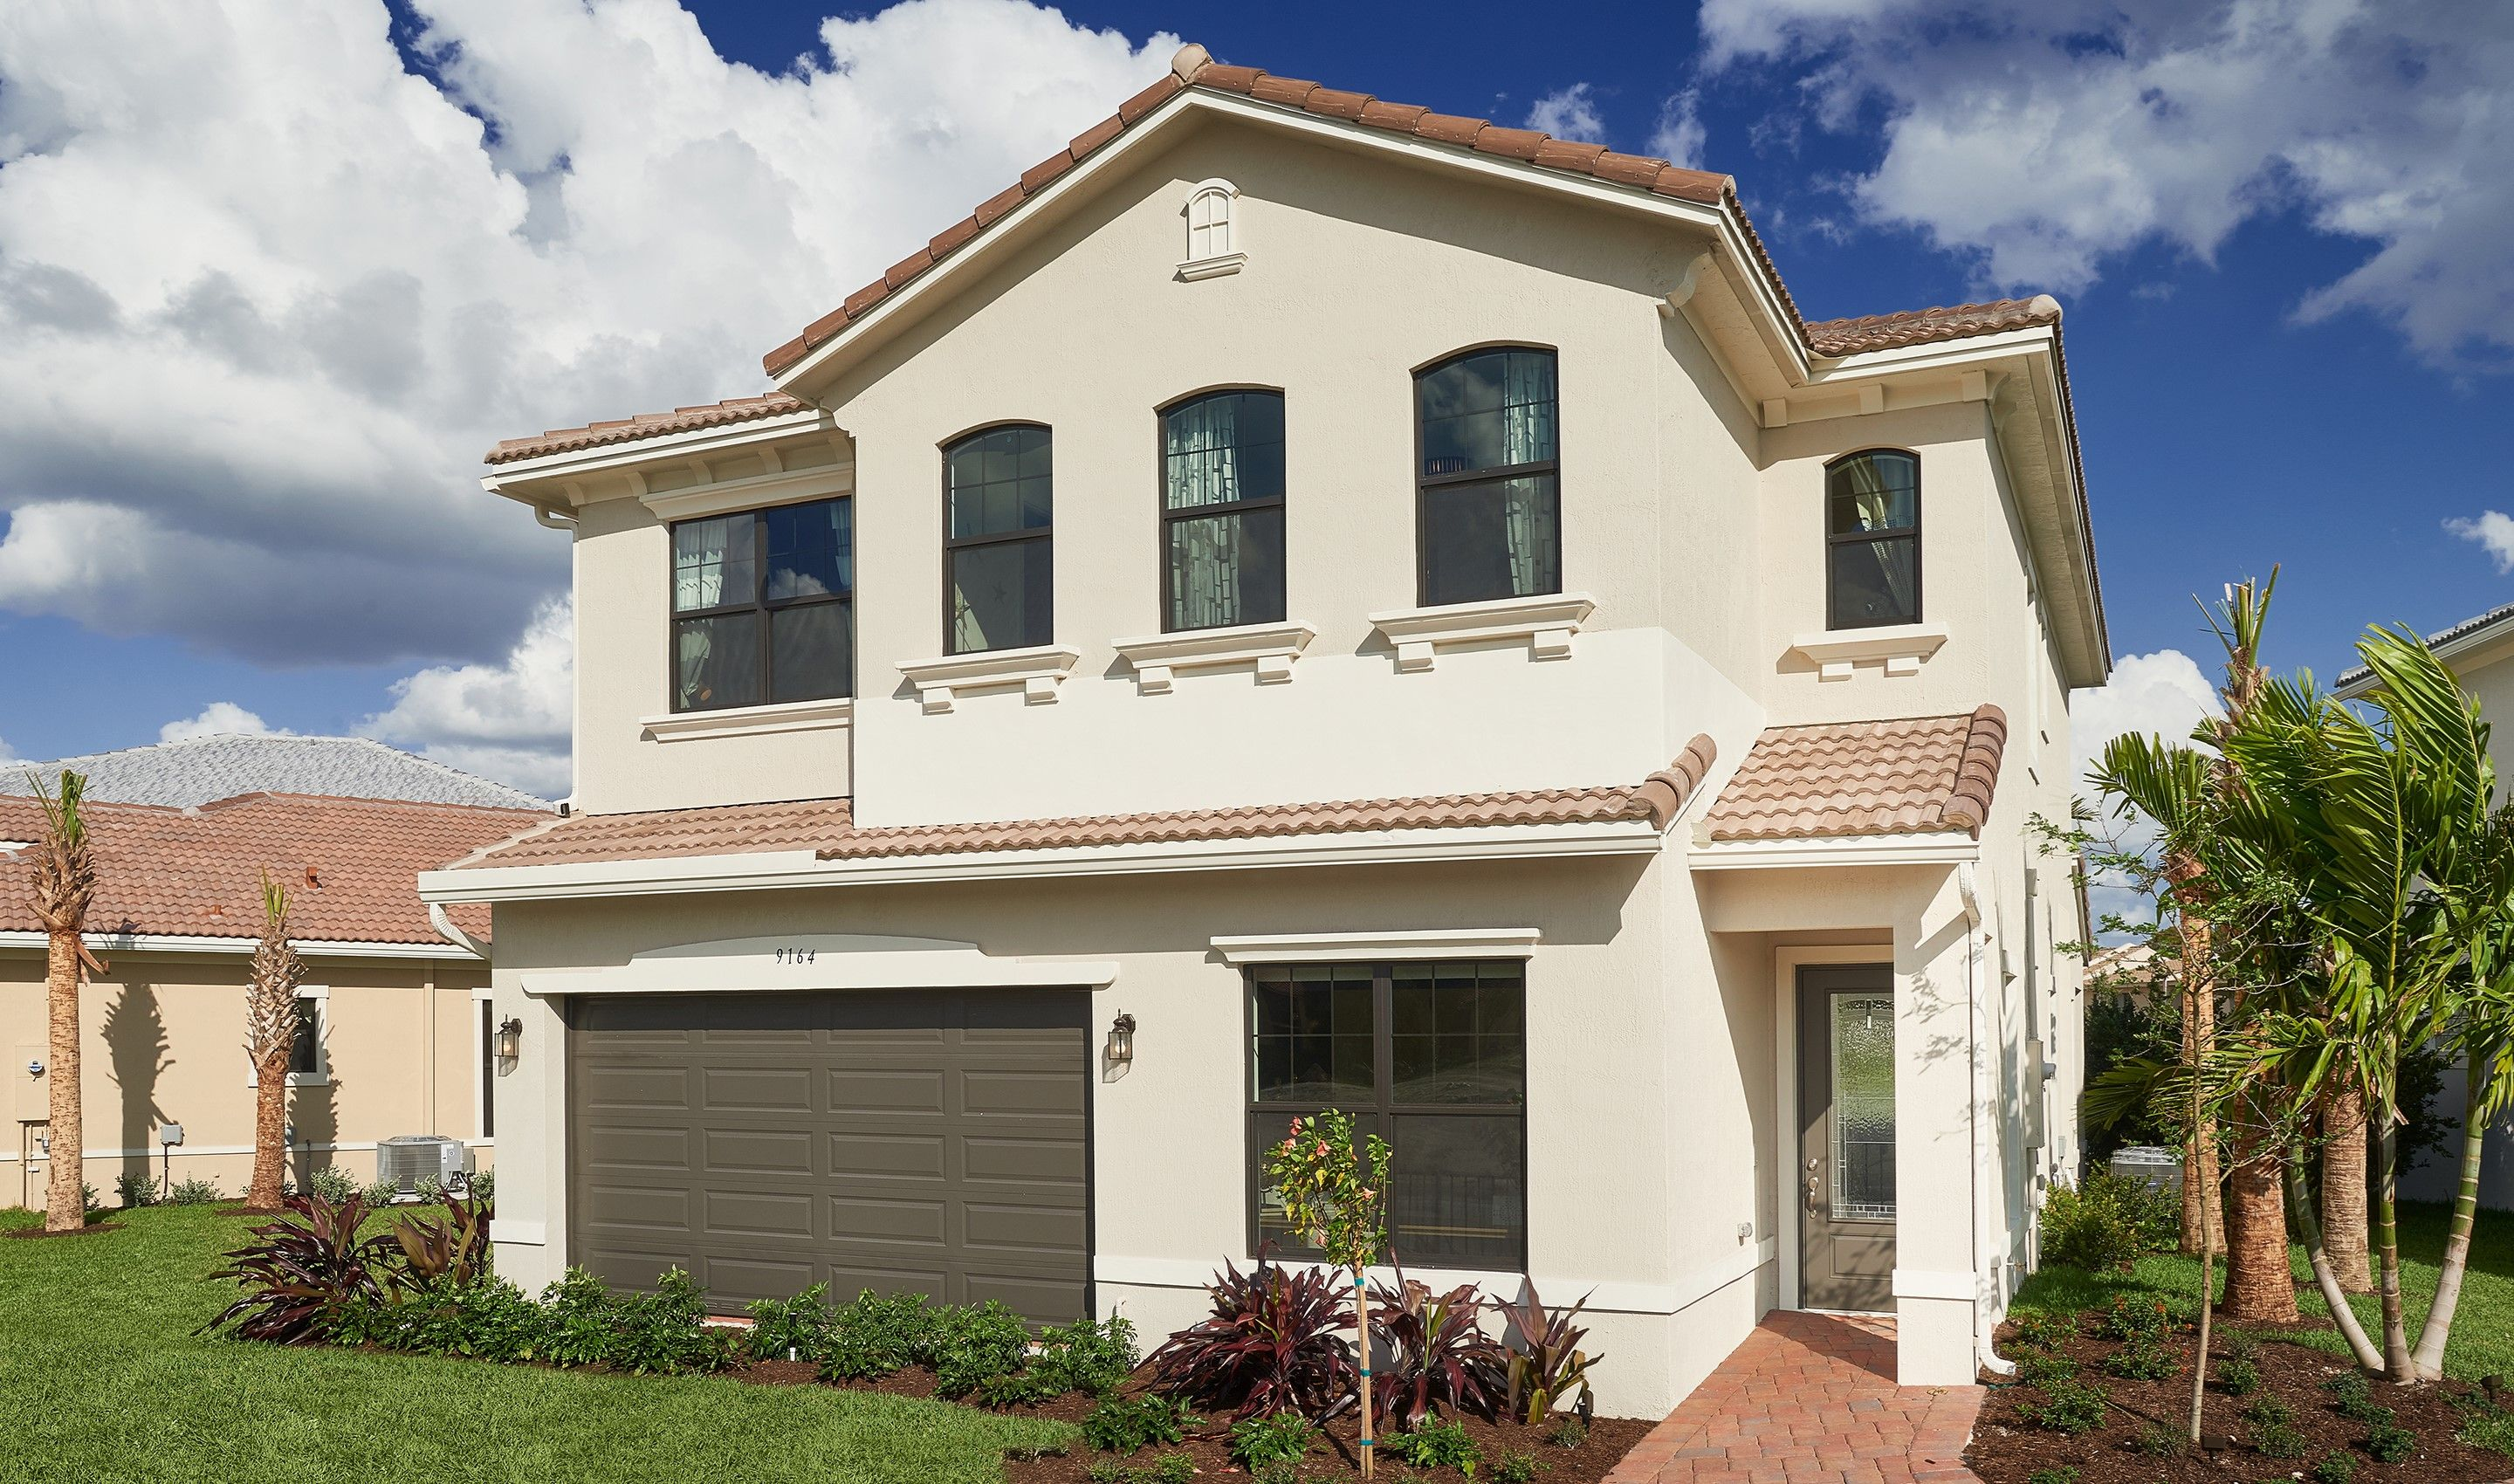 Single Family for Active at Coral Lago - Vitale University Drive And Nw 39th Street Coral Springs, Florida 33075 United States